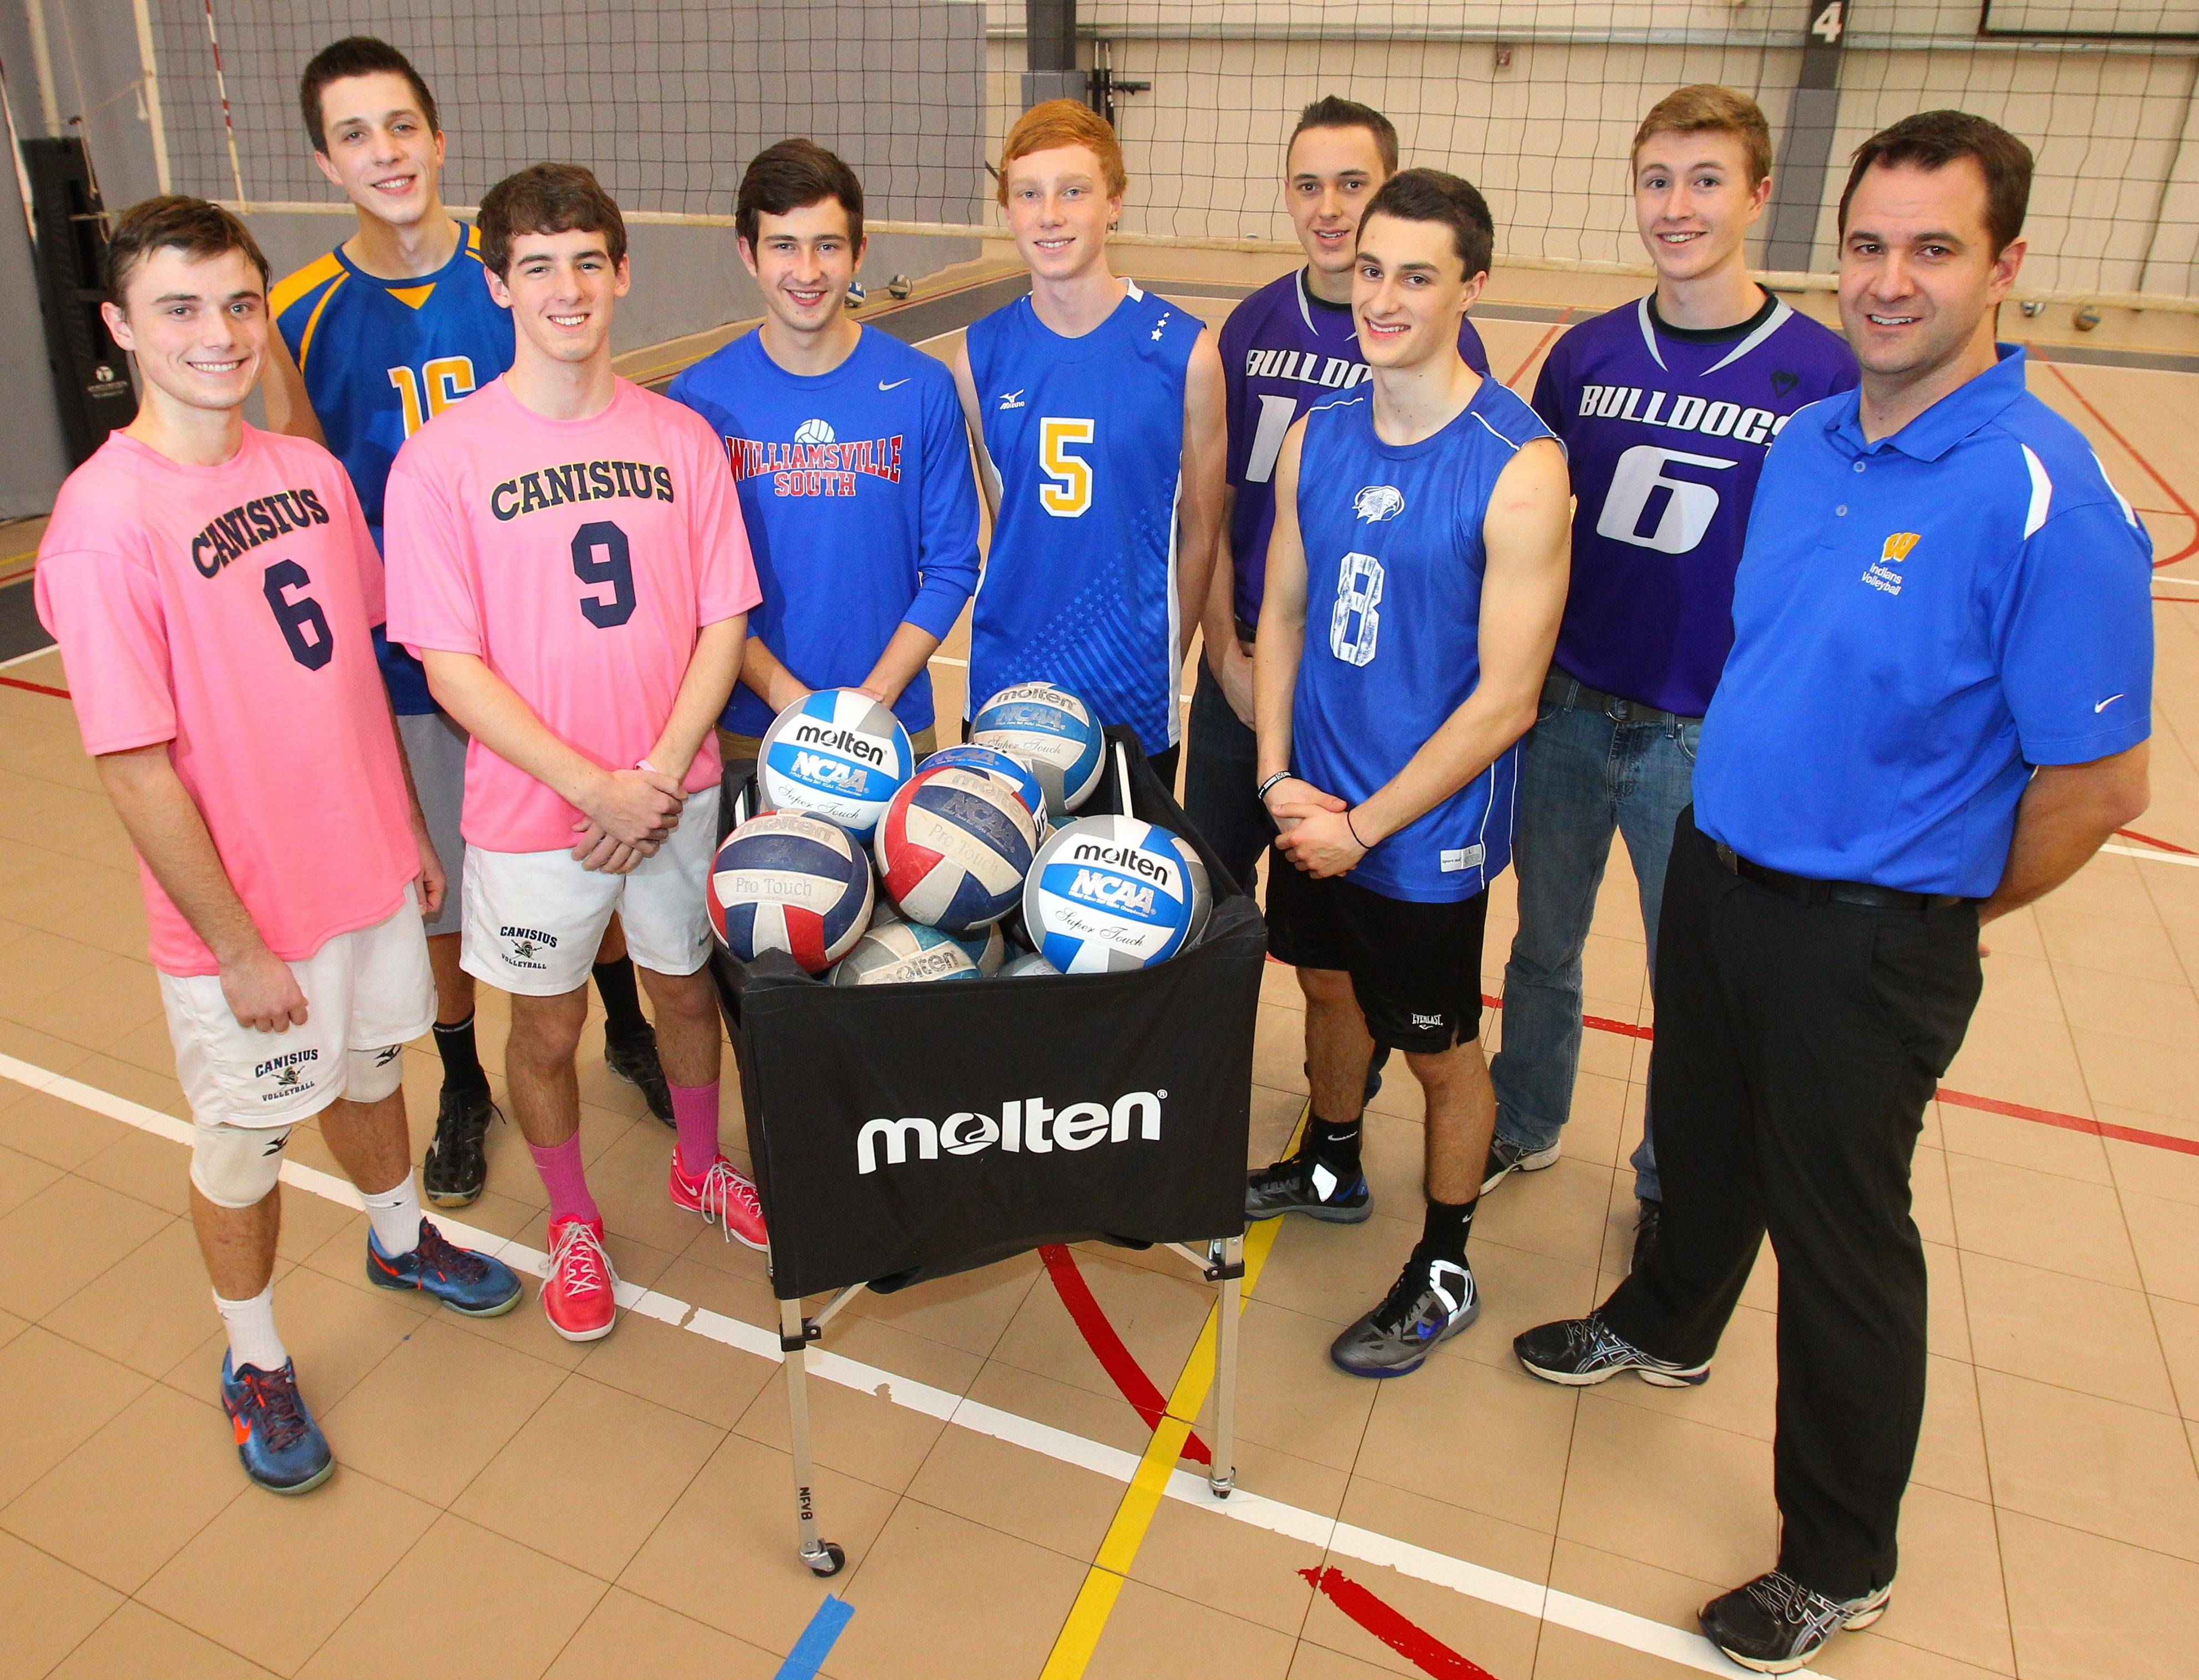 Members of the All-WNY boys volleyball team are (from left): Trevor Gooch, Canisius; Jason Donorovich, Lockport; Brian Costello, Canisius; Anthony Podgorsak, Williamsville South; Evan Koehler, West Seneca West; Zach Yerington, Hamburg; Dylan Durni, Frontier; Patrick Stroh, Hamburg; and 2013 Coach of the Year Brett Widman, West Seneca West.